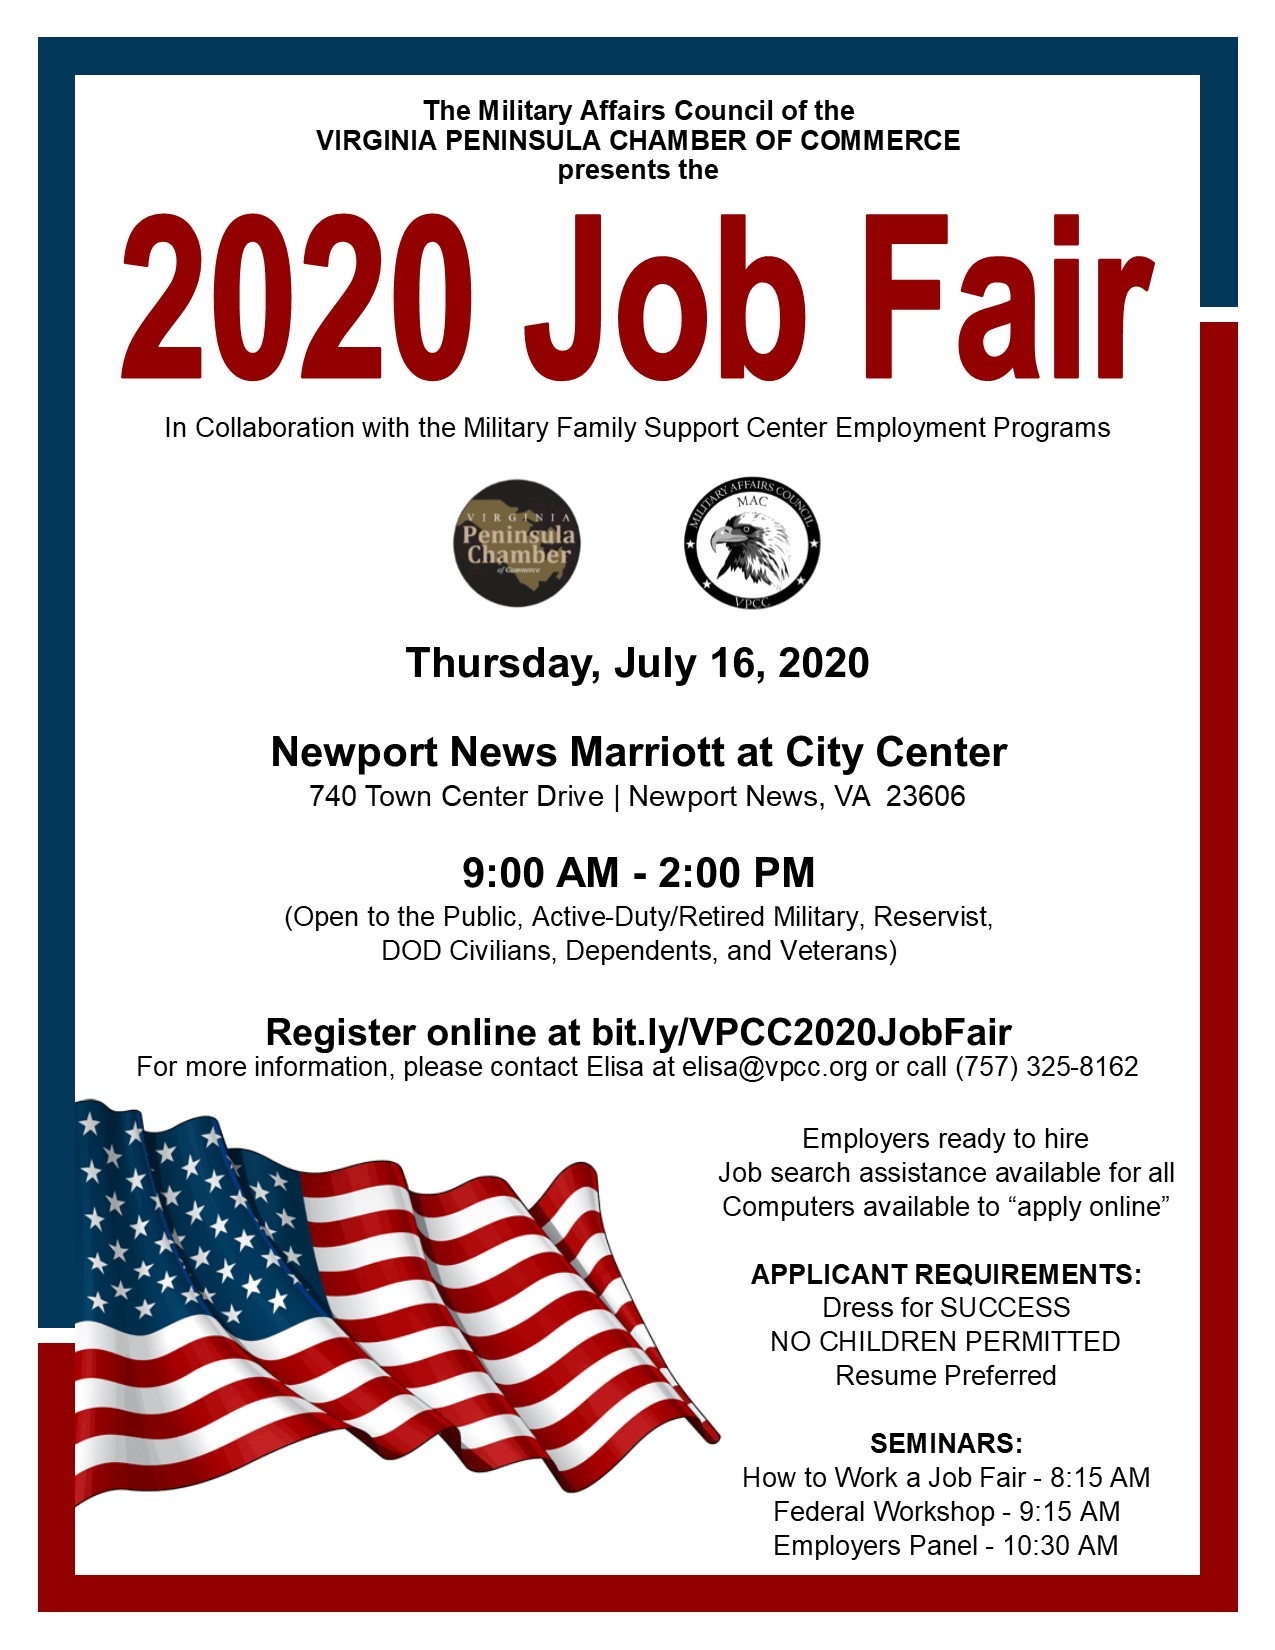 2017-0712-Career-Fair-(SPONSORSHIP-and-EXHIBITOR-FLYER).jpg